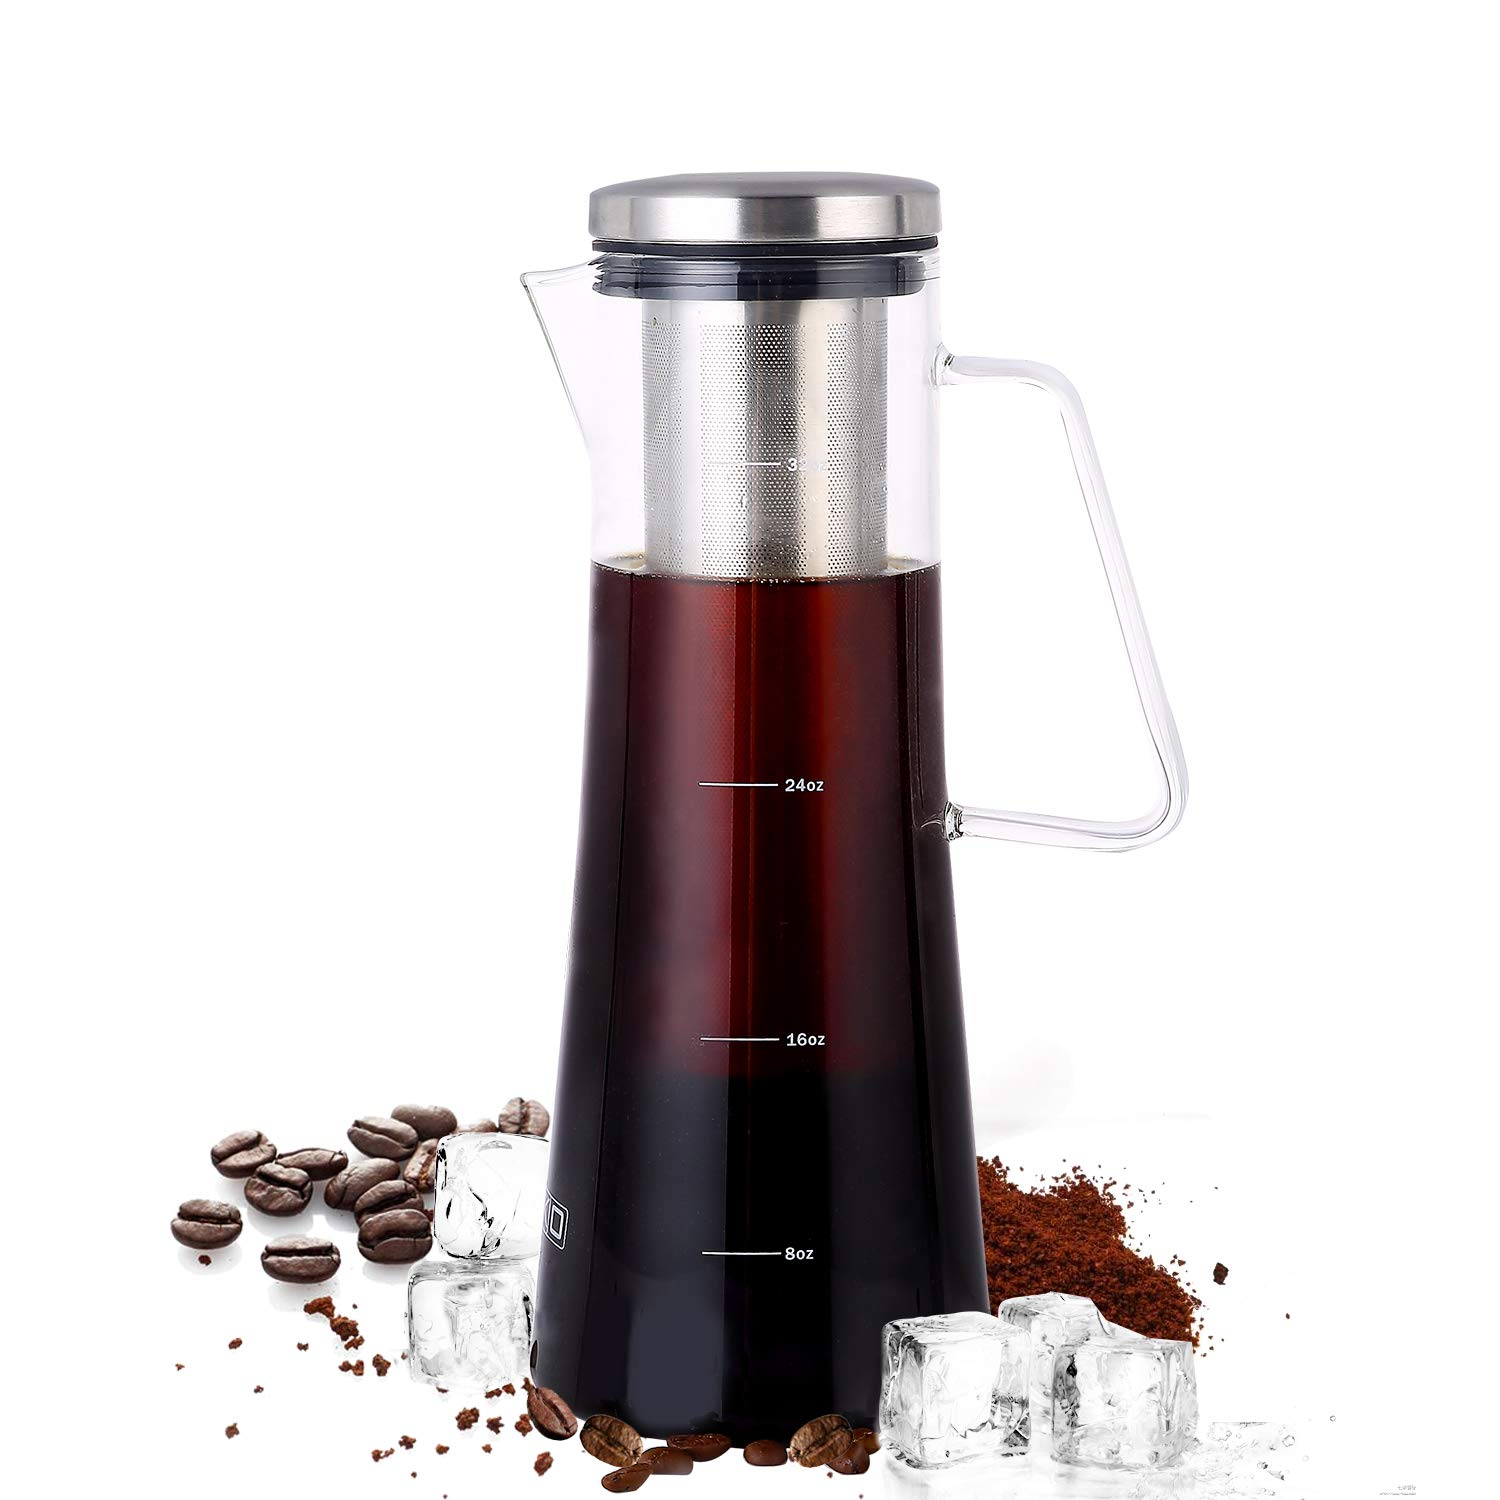 Cold Brew Coffee Maker Iced Tea Brewer 1 Quart - 32 oz Thick Borosilicate Glass Carafe with Double Mesh Removable Filter 4 Cups Coffee Maker